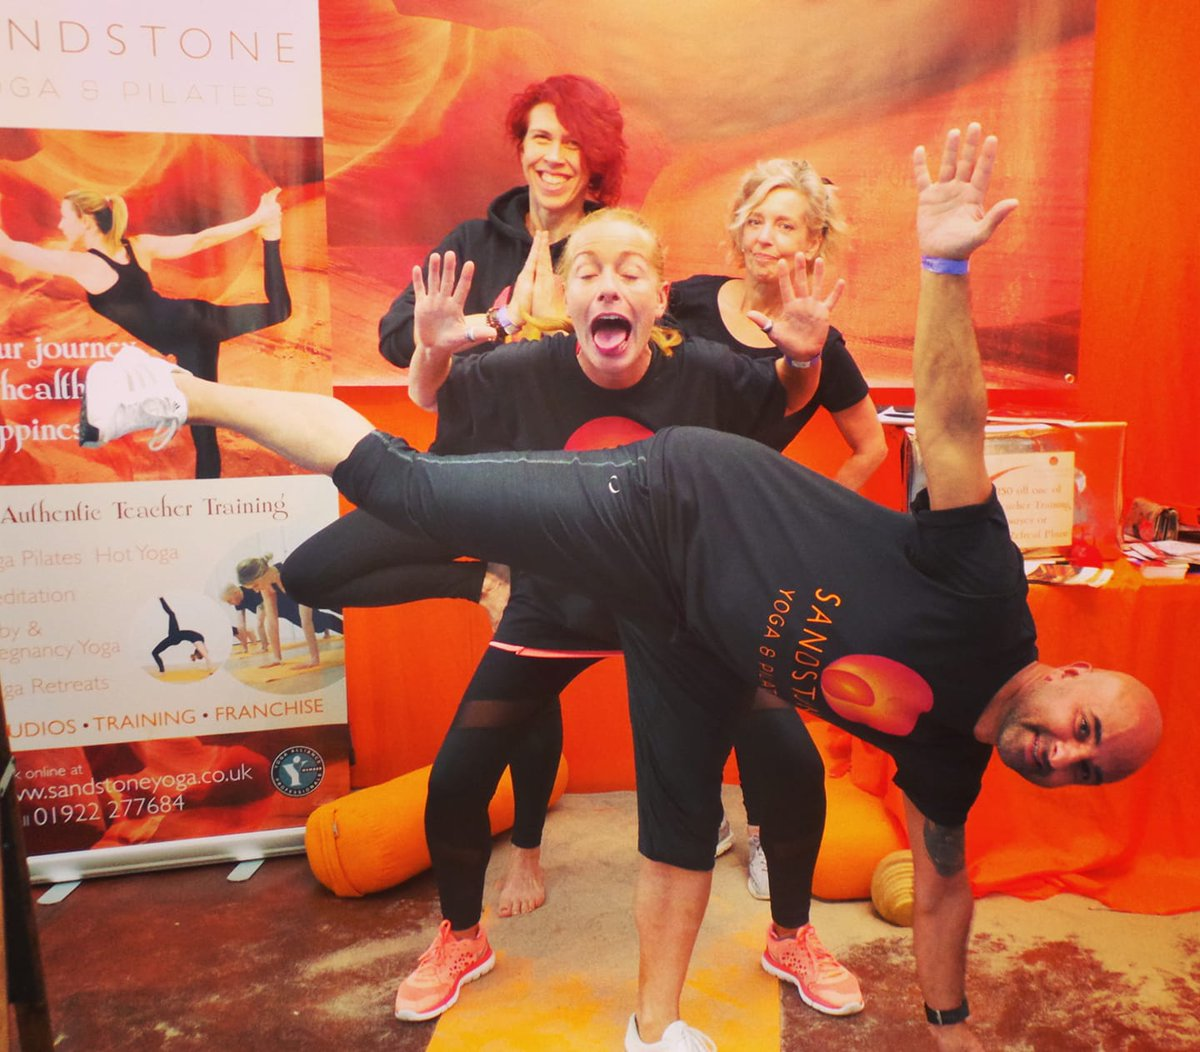 Sandstone Yoga On Twitter Good Evening Sutcolhour Hope You All Had A Good Week We Had A Fabulous Weekend At The Omyogashow In London Talked To Some Fantastic People Taught And Practised